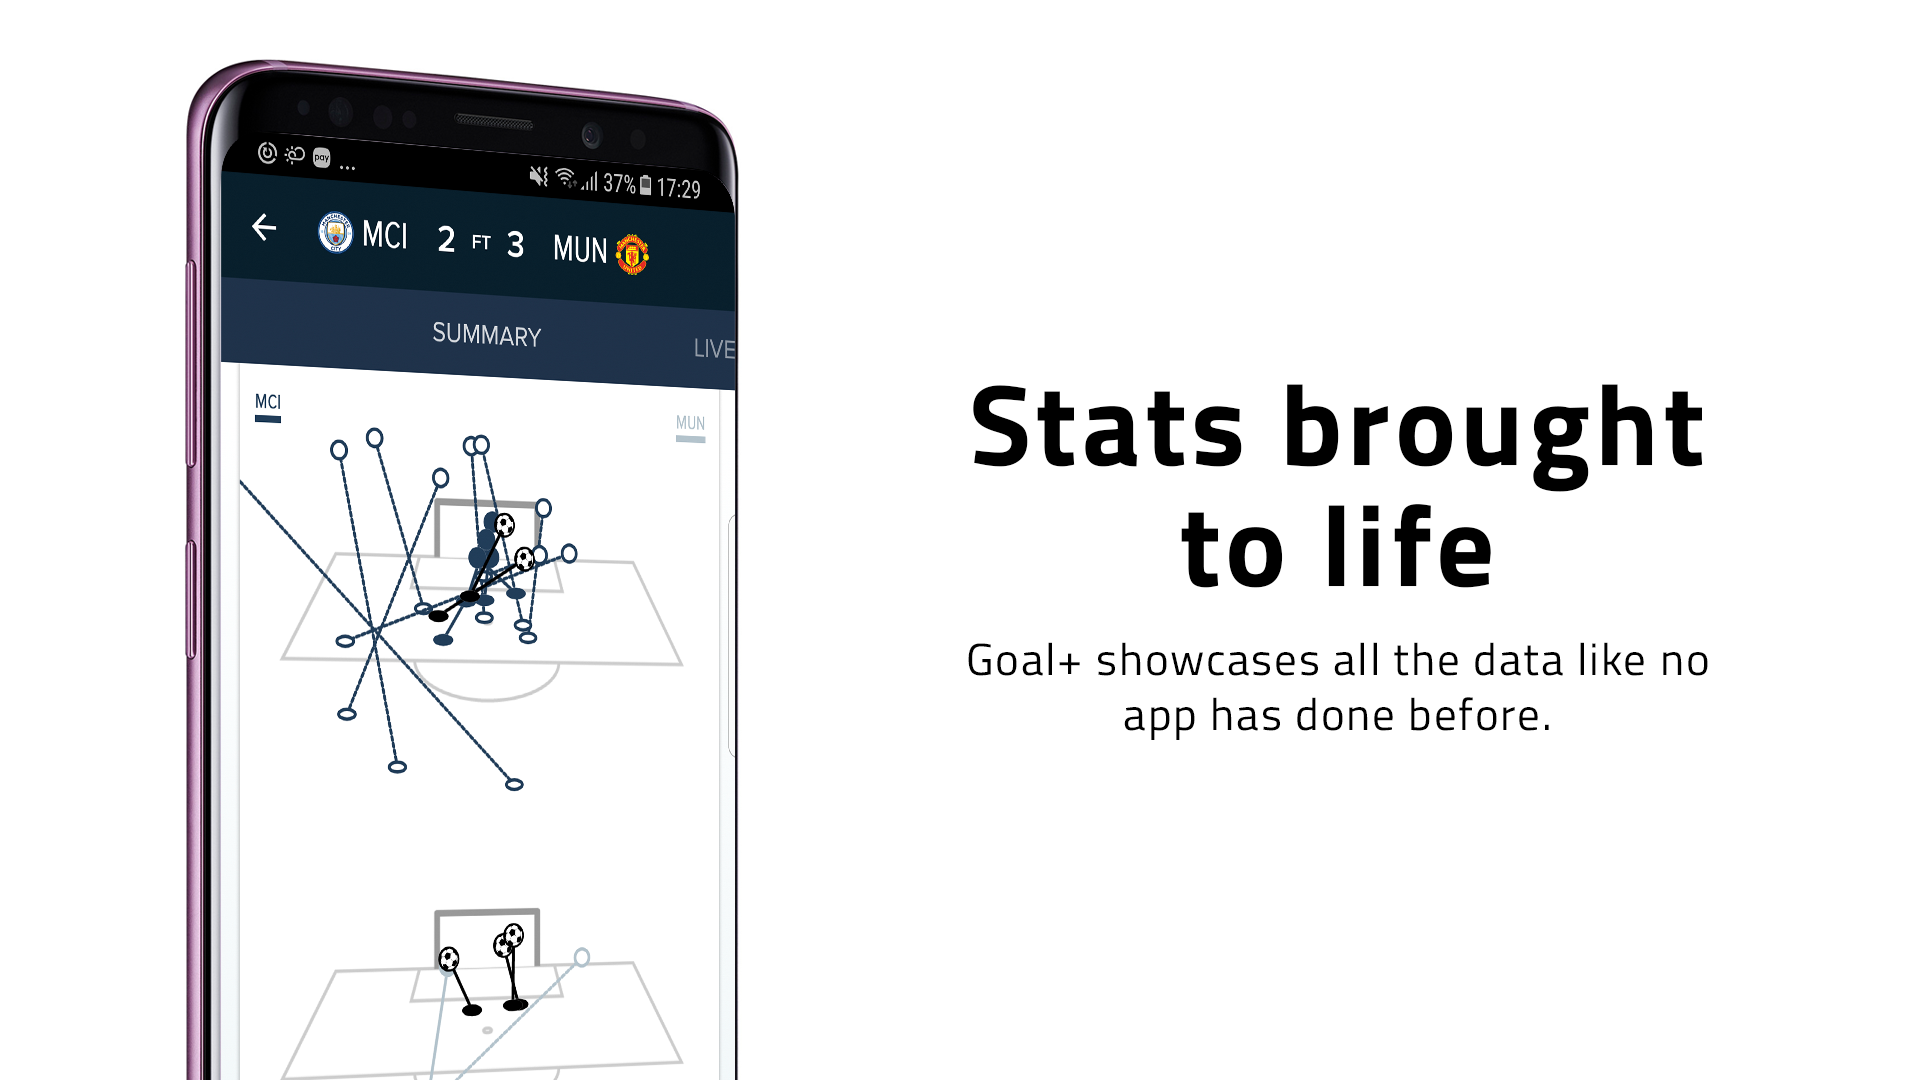 Samsung Goal+ S9 stats to life